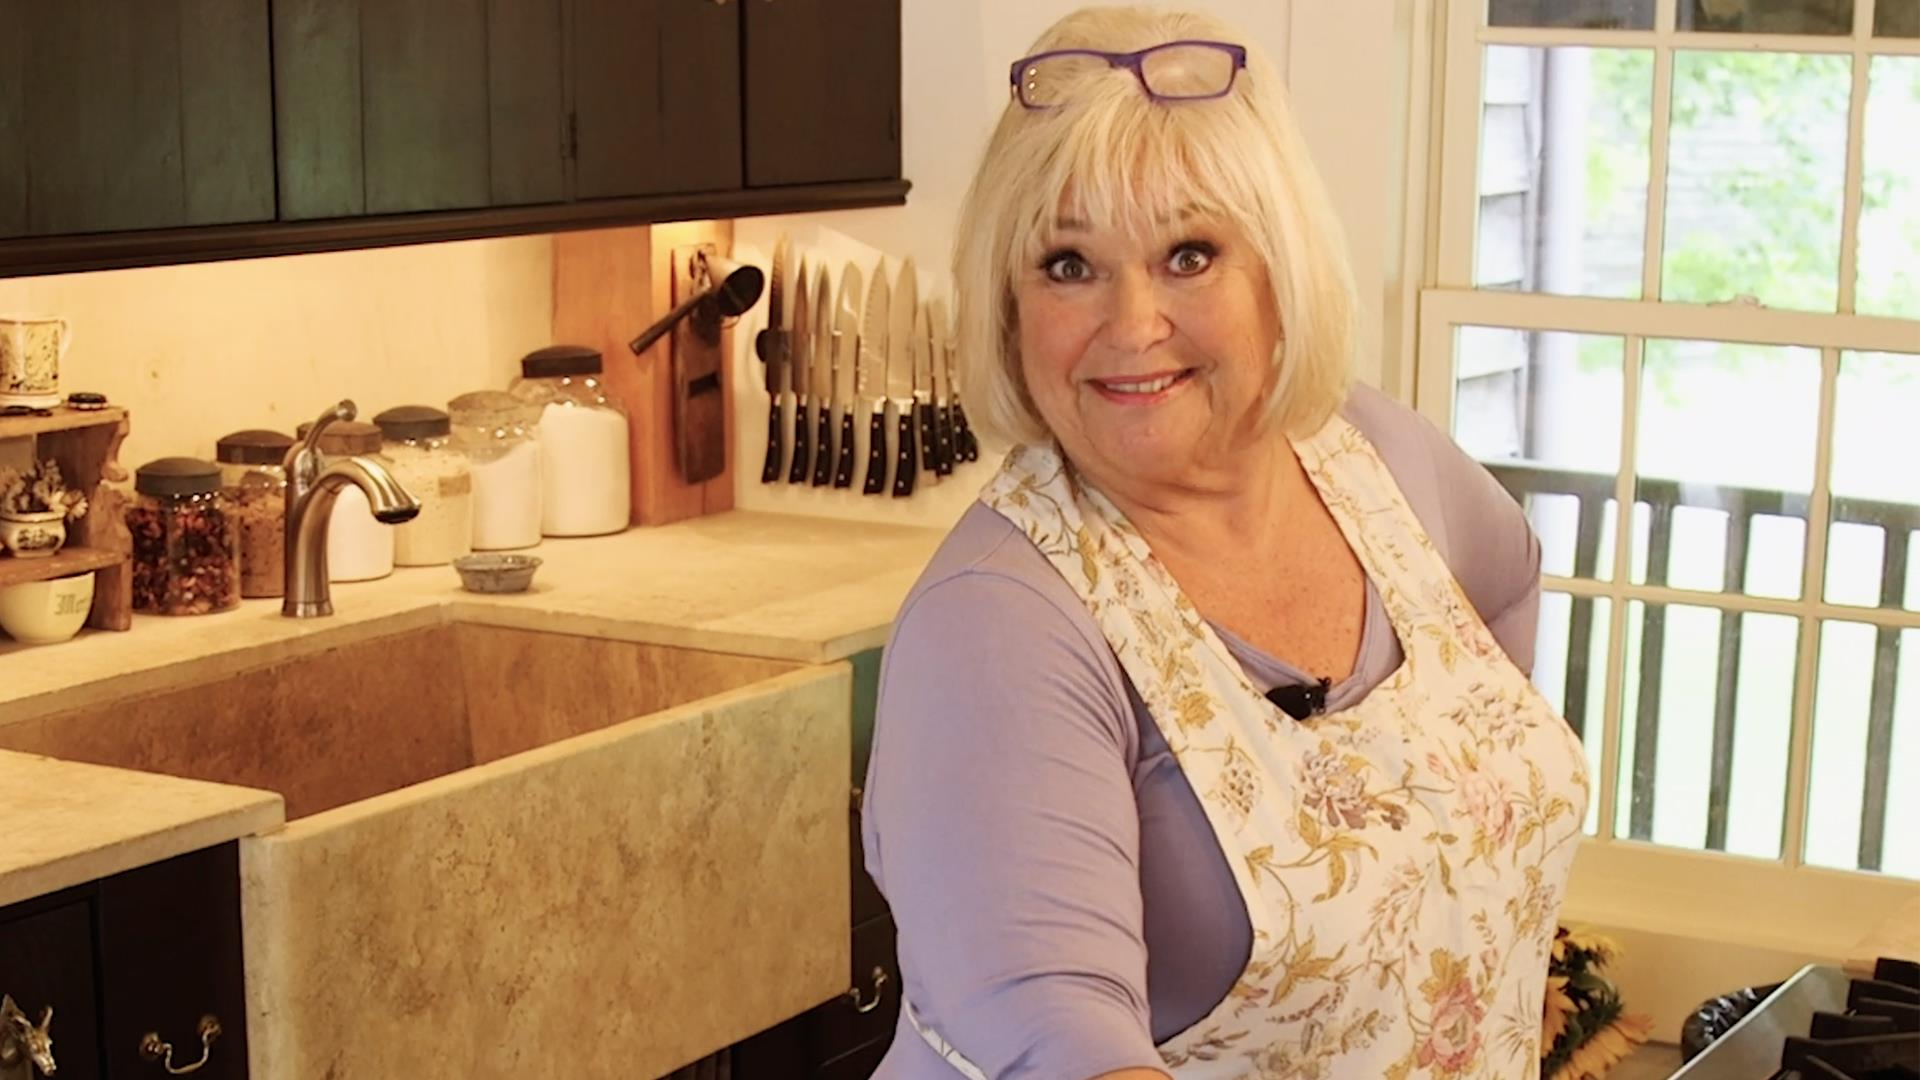 Crazy Kitchens Tour Food Network Star Nancy Fuller S Adorably Chic 17th Century Kitchen